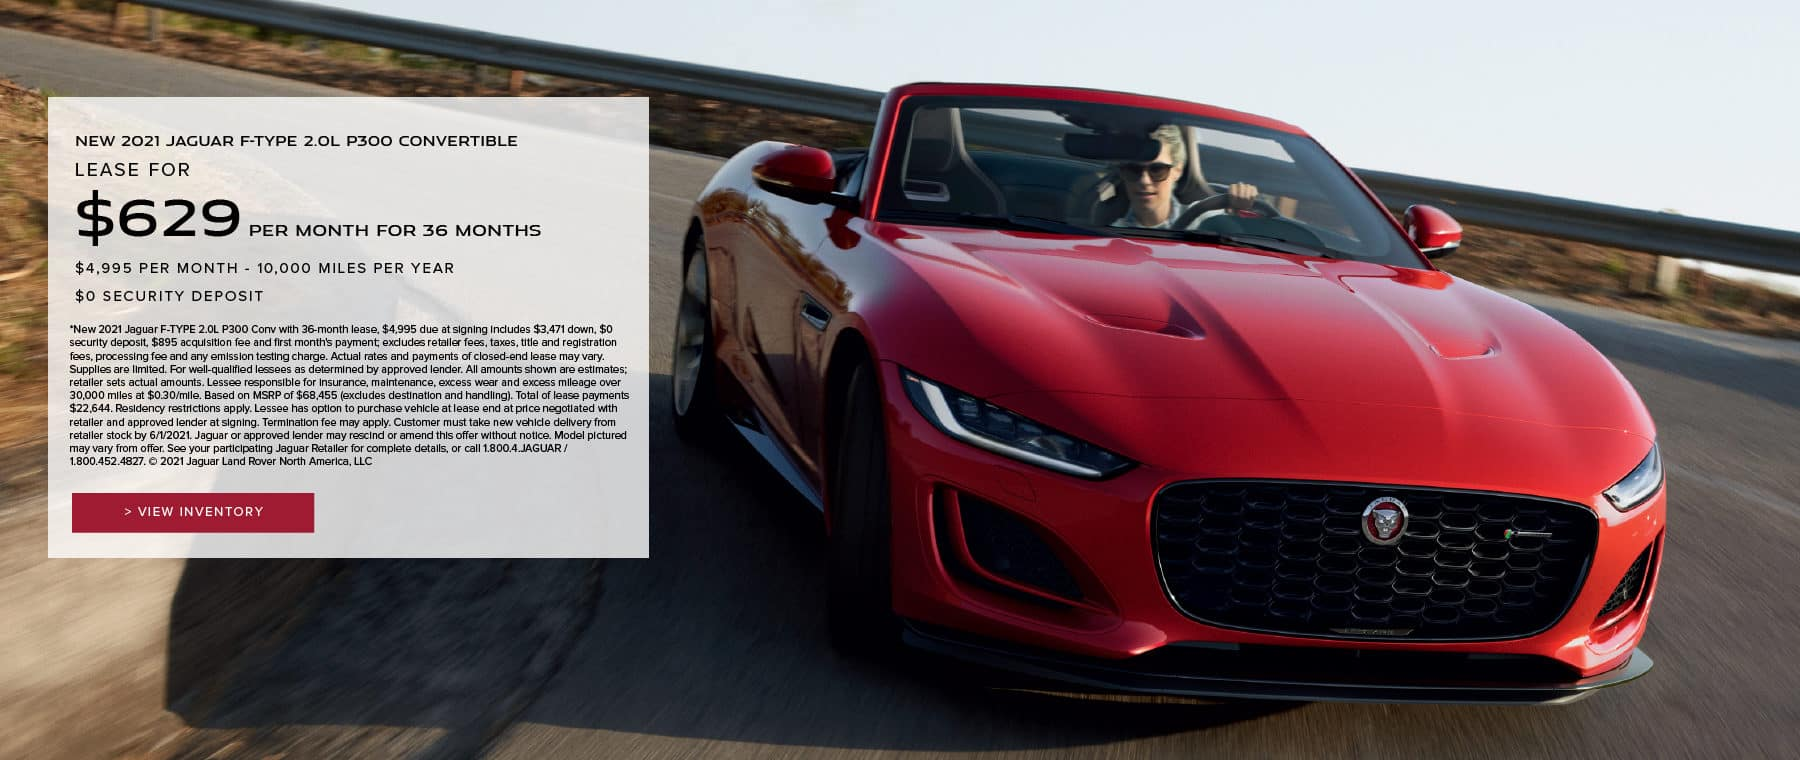 2021 JAGUAR F-TYPE 2.0L P300 CONVERTIBLE. $629 PER MONTH. 36 MONTH LEASE TERM. $4,995 CASH DUE AT SIGNING. $0 SECURITY DEPOSIT. 7,500 MILES PER YEAR. EXCLUDES RETAILER FEES, TAXES, TITLE AND REGISTRATION FEES, PROCESSING FEE AND ANY EMISSION TESTING CHARGE. OFFER ENDS 6/1/2021. VIEW INVENTORY. RED JAGUAR F-TYPE COUPE DRIVING DOWN ROAD.